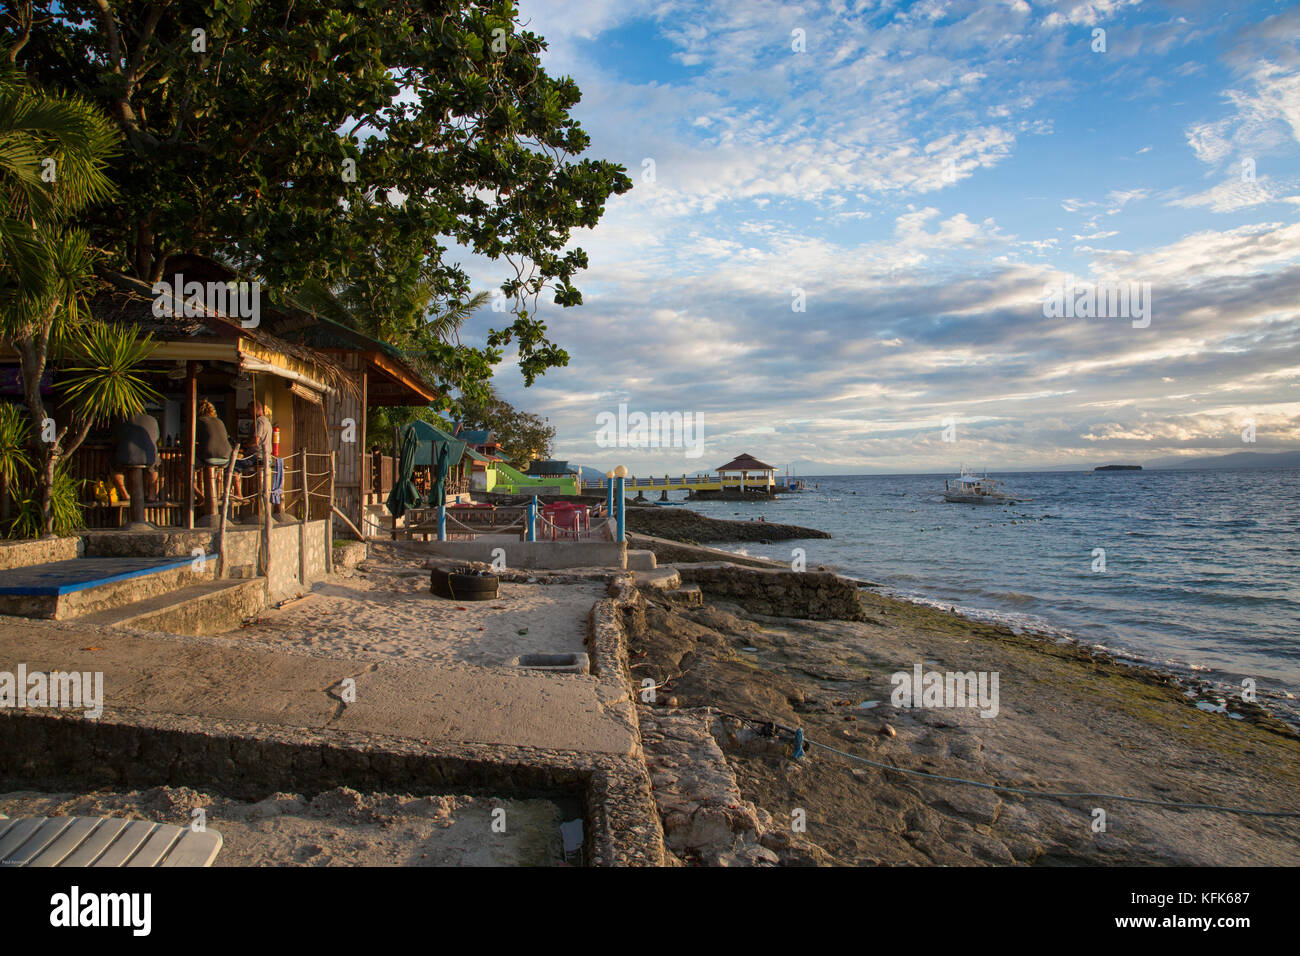 Scuba diving shops on rocky coastline in Moalboal, Cebu Island, Philippines - Stock Image